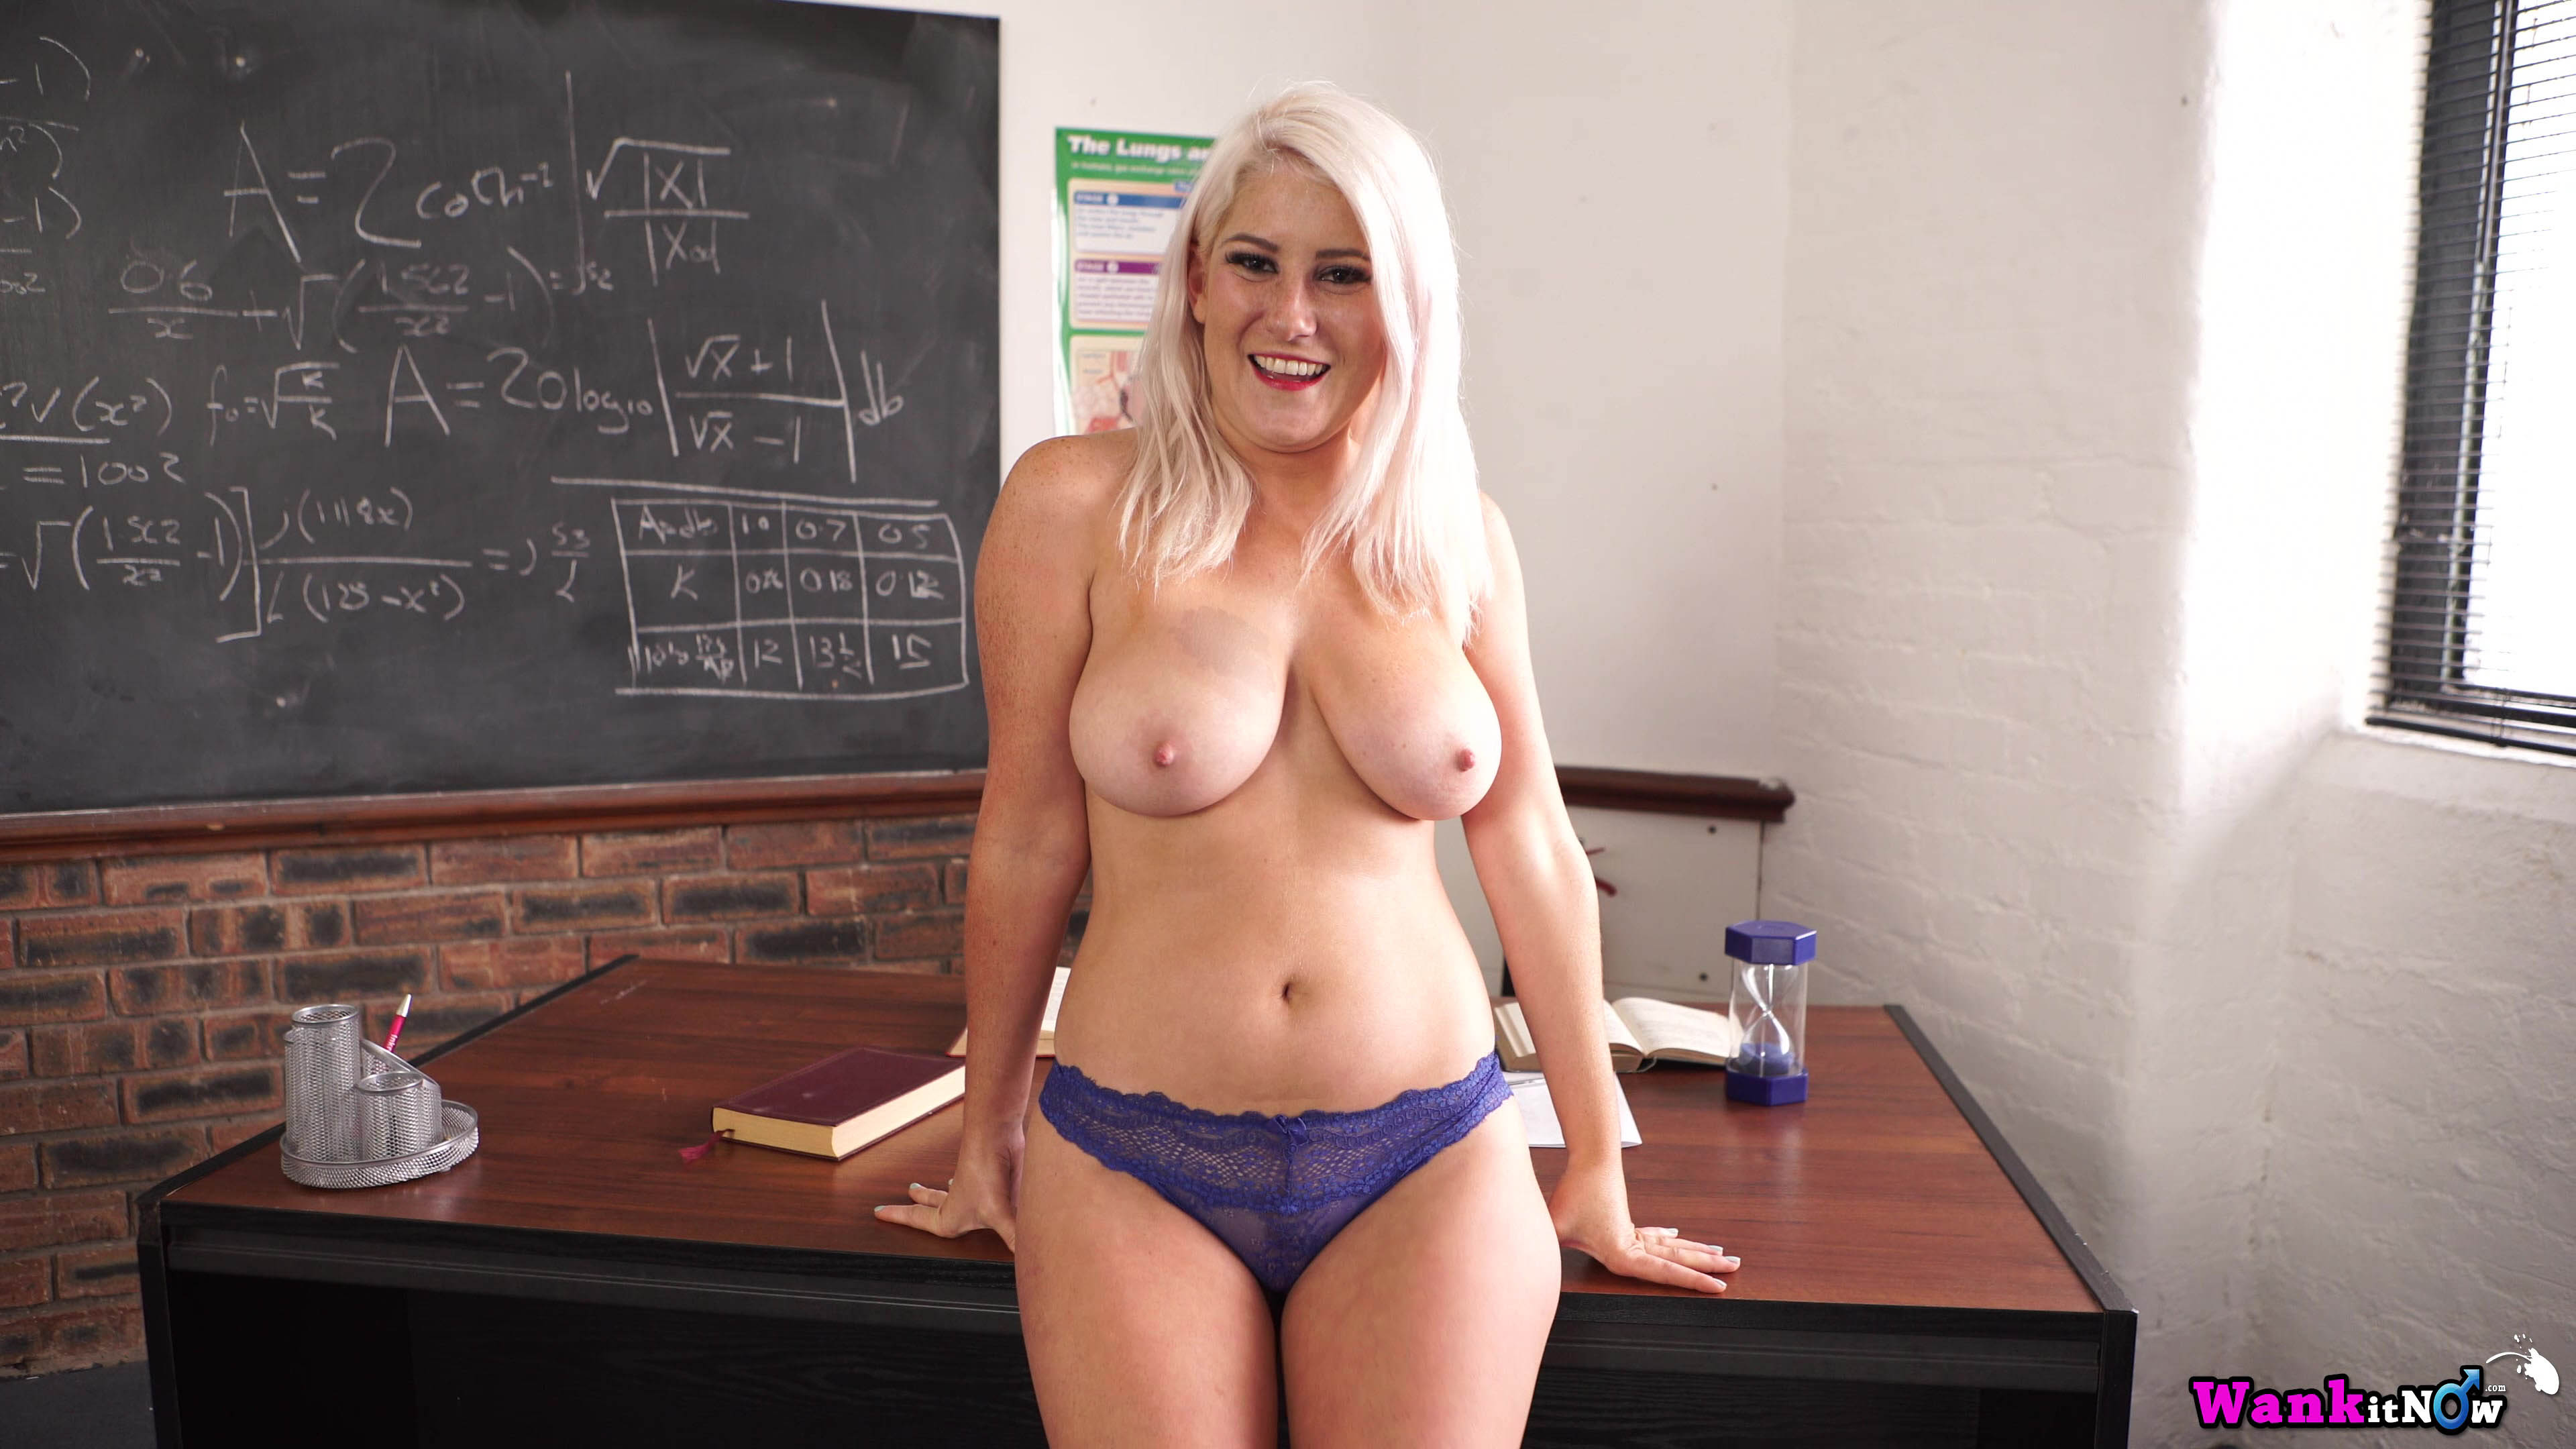 U iowa teacher nude